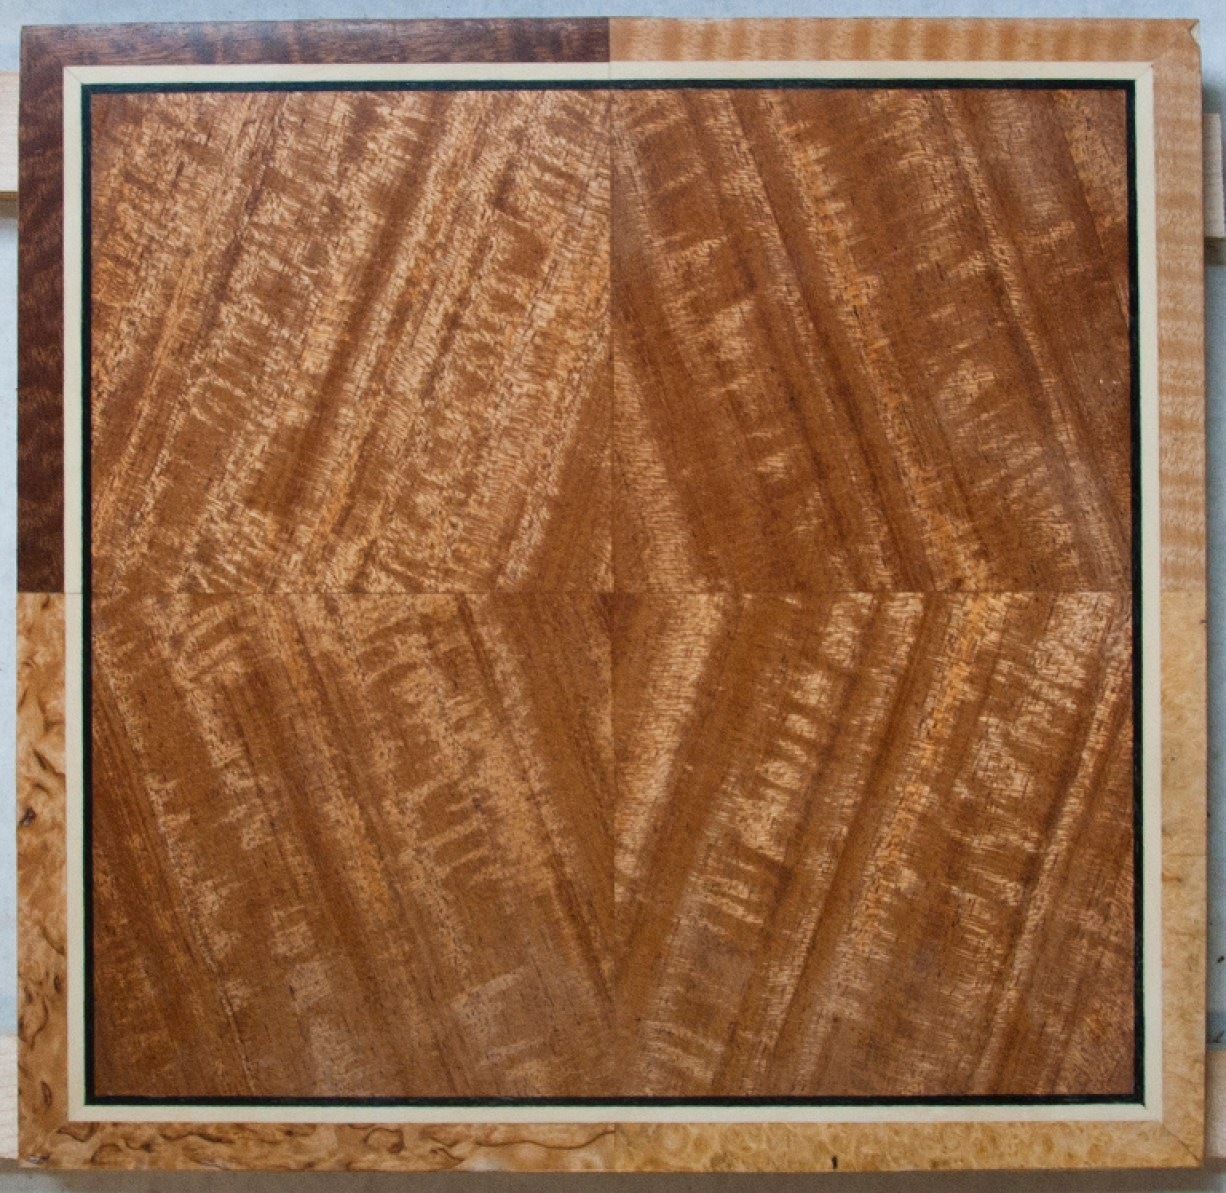 Four way veneer matching | Take home panel from the class | Heller & Heller Custom Furniture